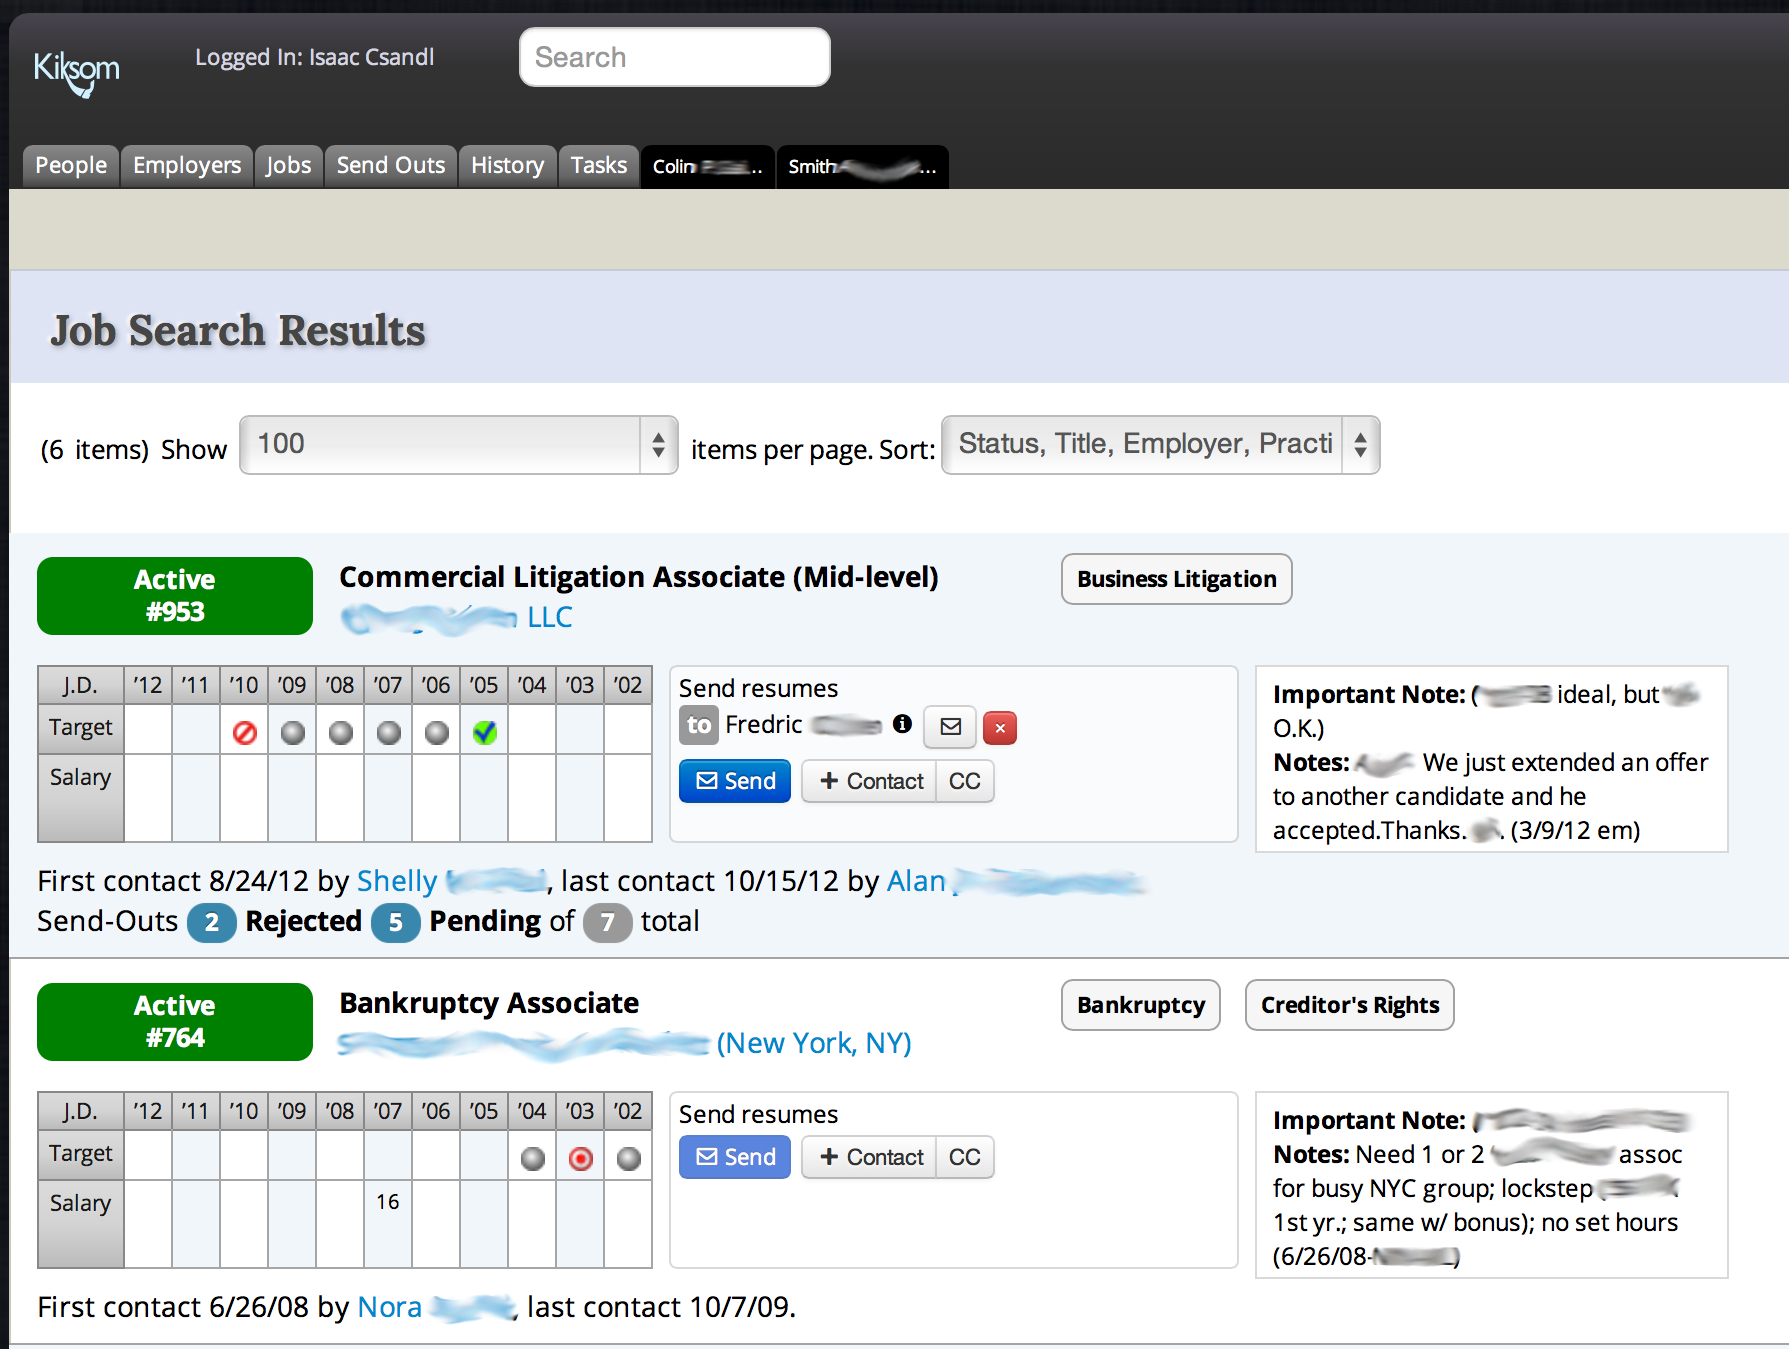 Job Search Results List View